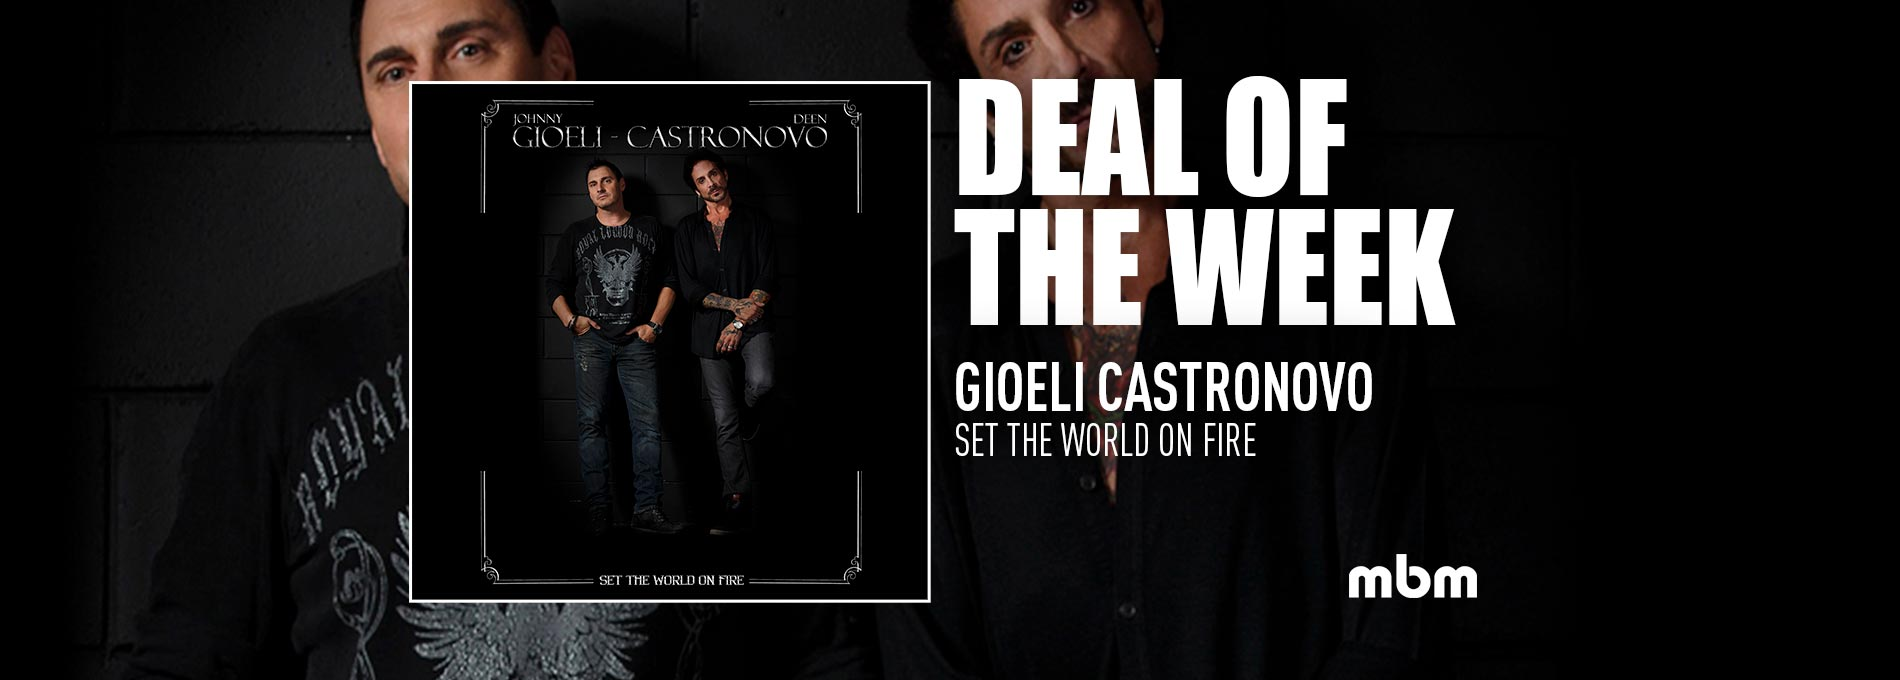 Deal Of The Week: GIOELI CASTRONOVO - Set The World On Fire